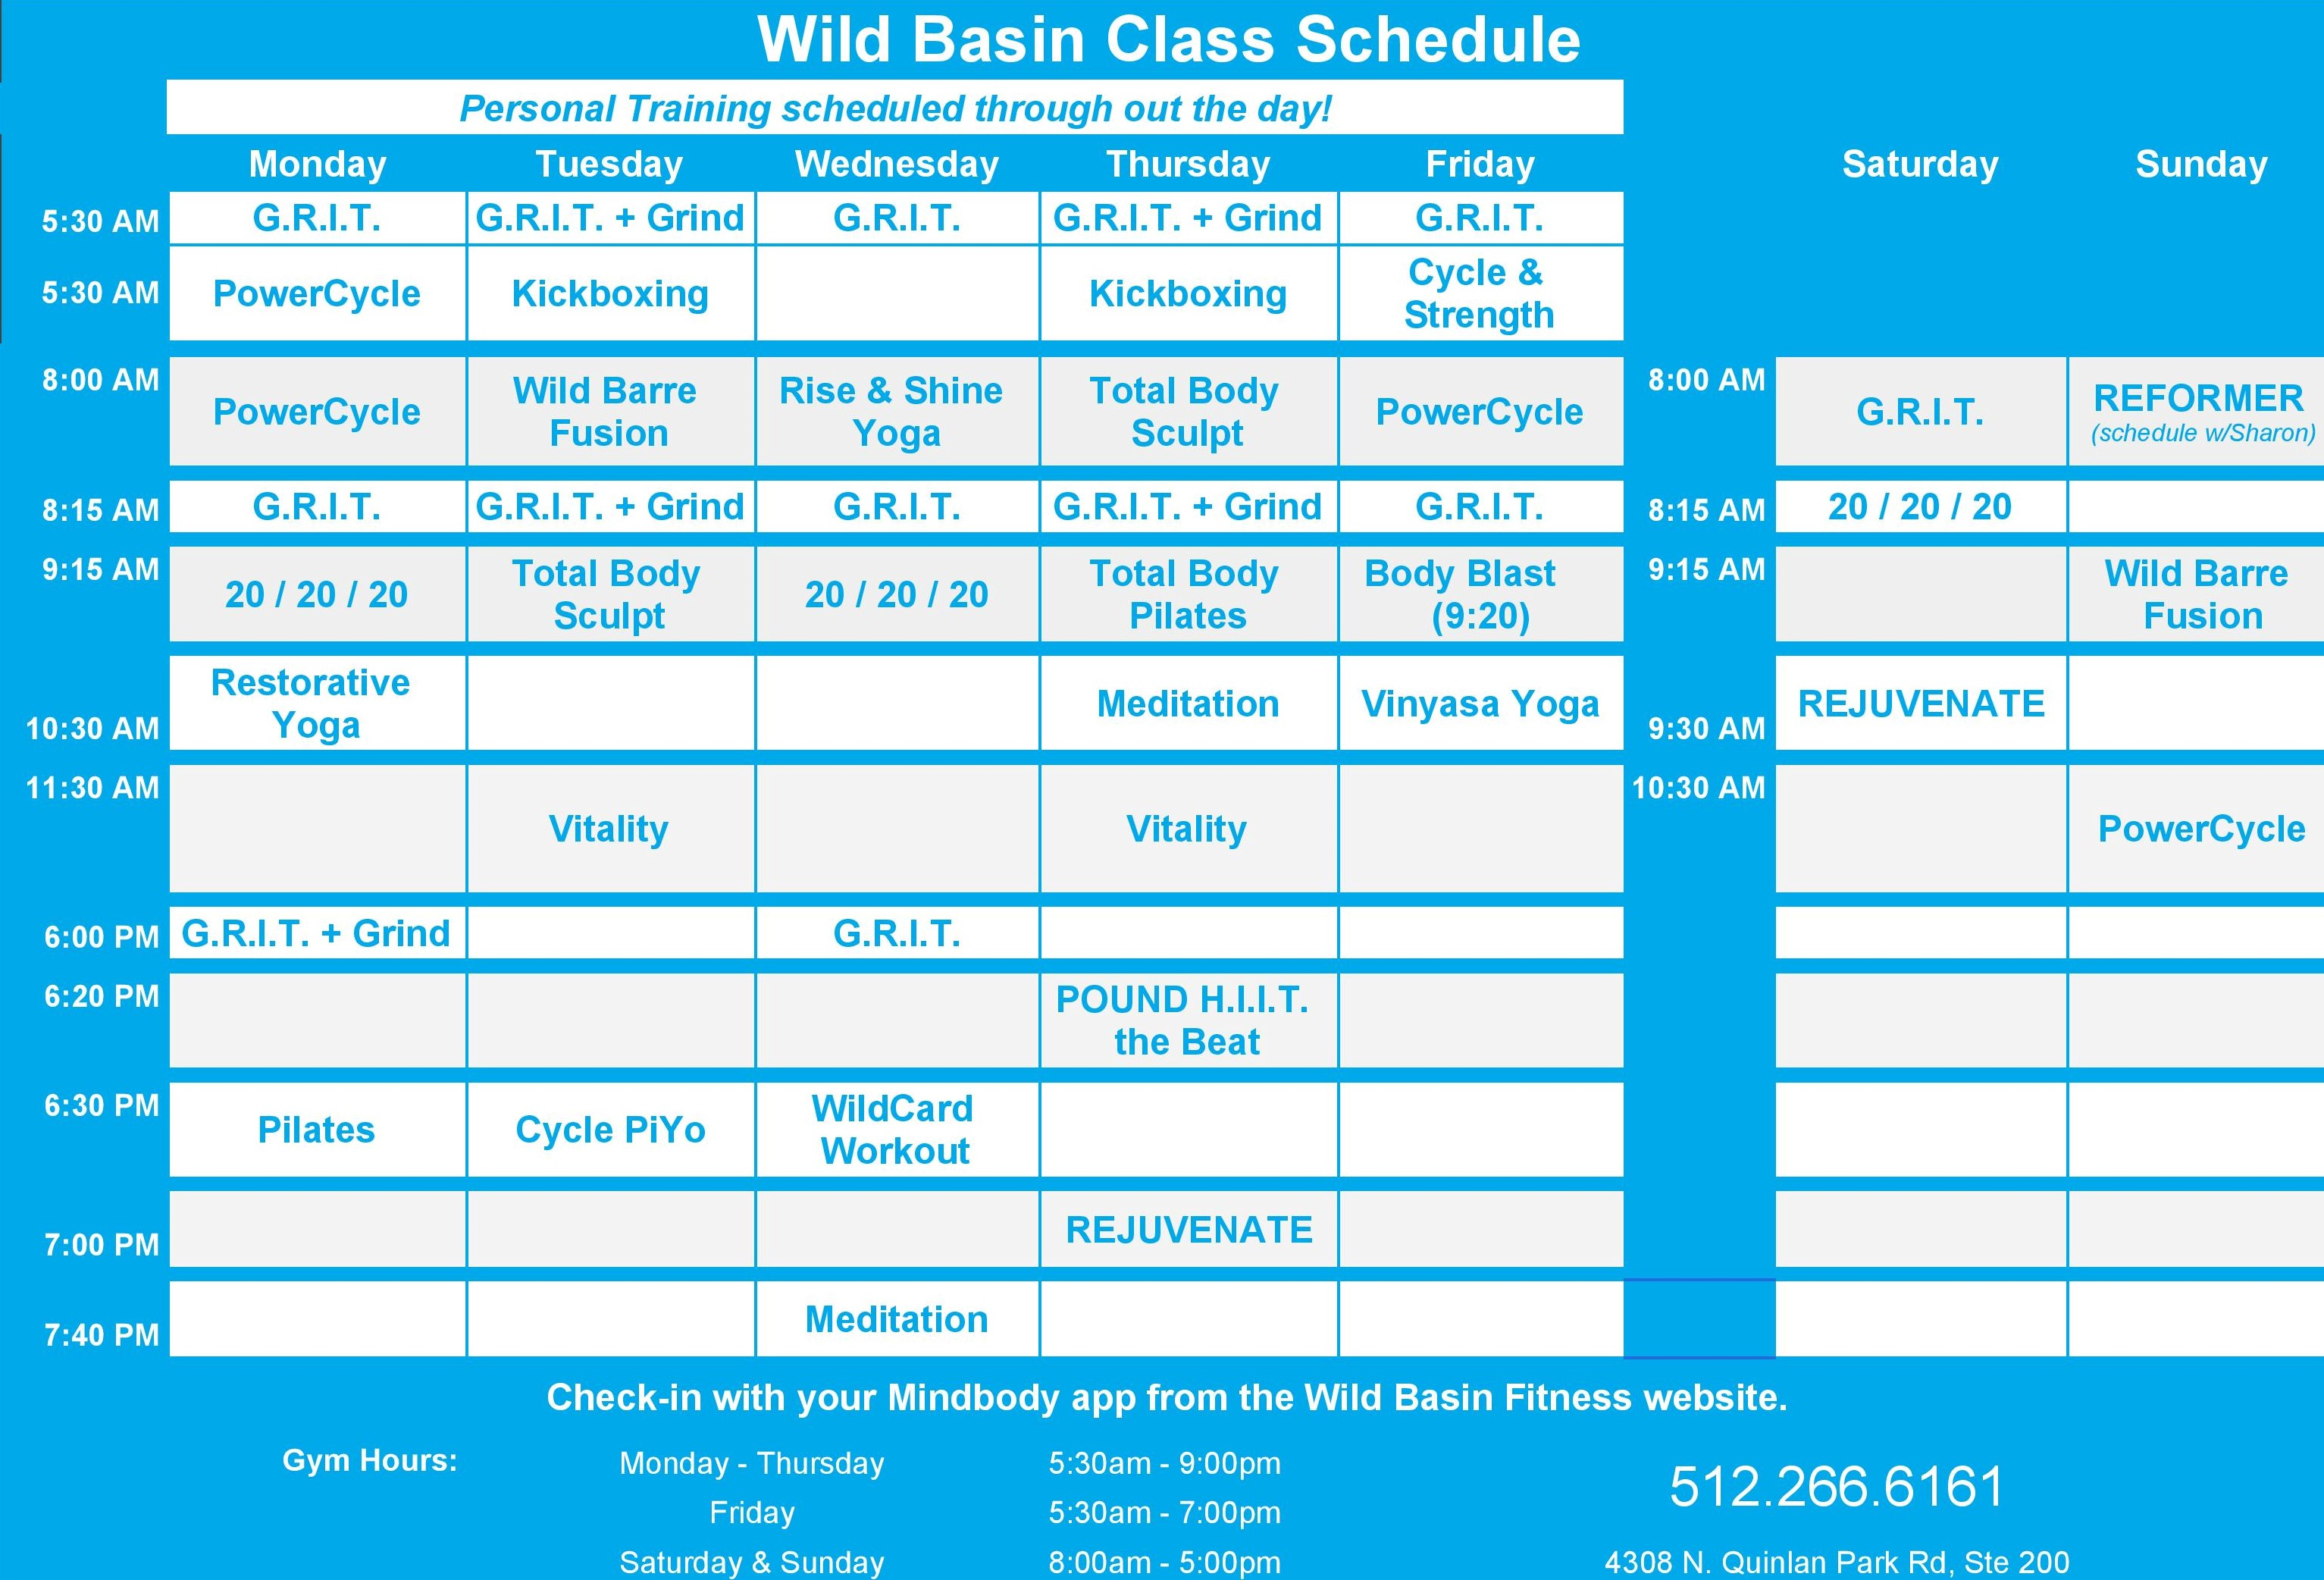 WBF Class schedule for website - Sheet1 (1)-page-001